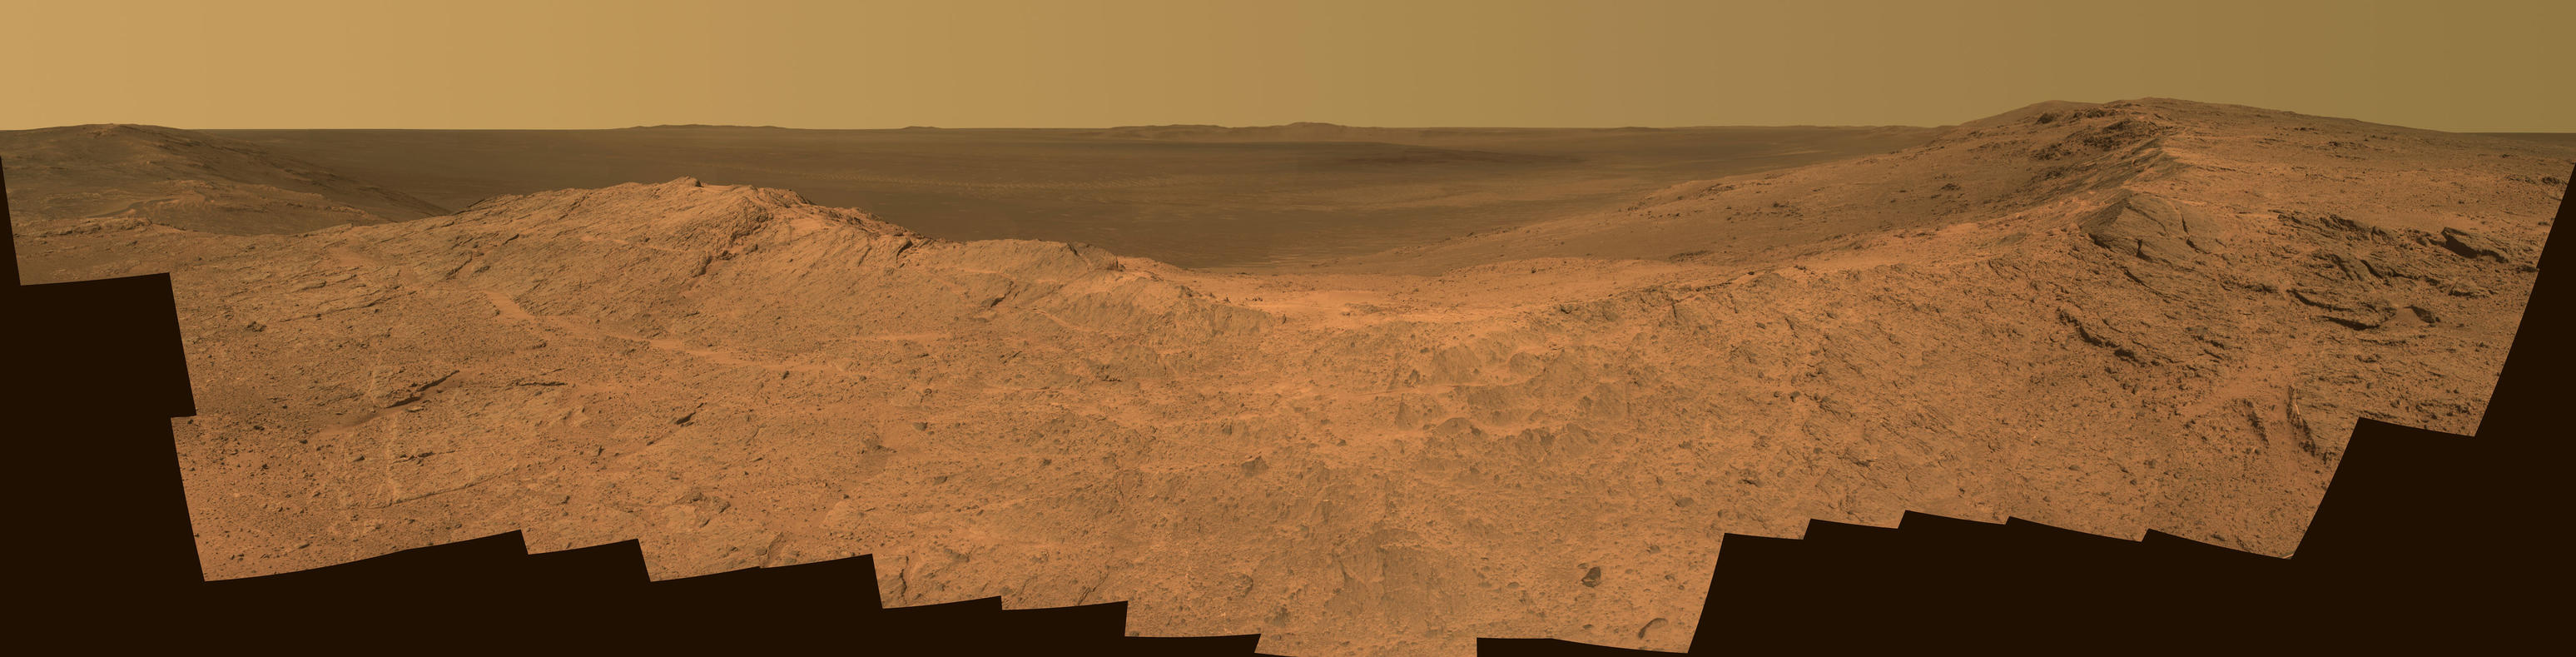 "This scene from the panoramic camera (Pancam) on NASA's Mars Exploration Rover Opportunity catches ""Pillinger Point,"" on the western rim of Endeavour Crater, in the foreground. The eastern rim of the crater is on the distant horizon. The scene merges many Pancam exposures taken on May 14, 2014."